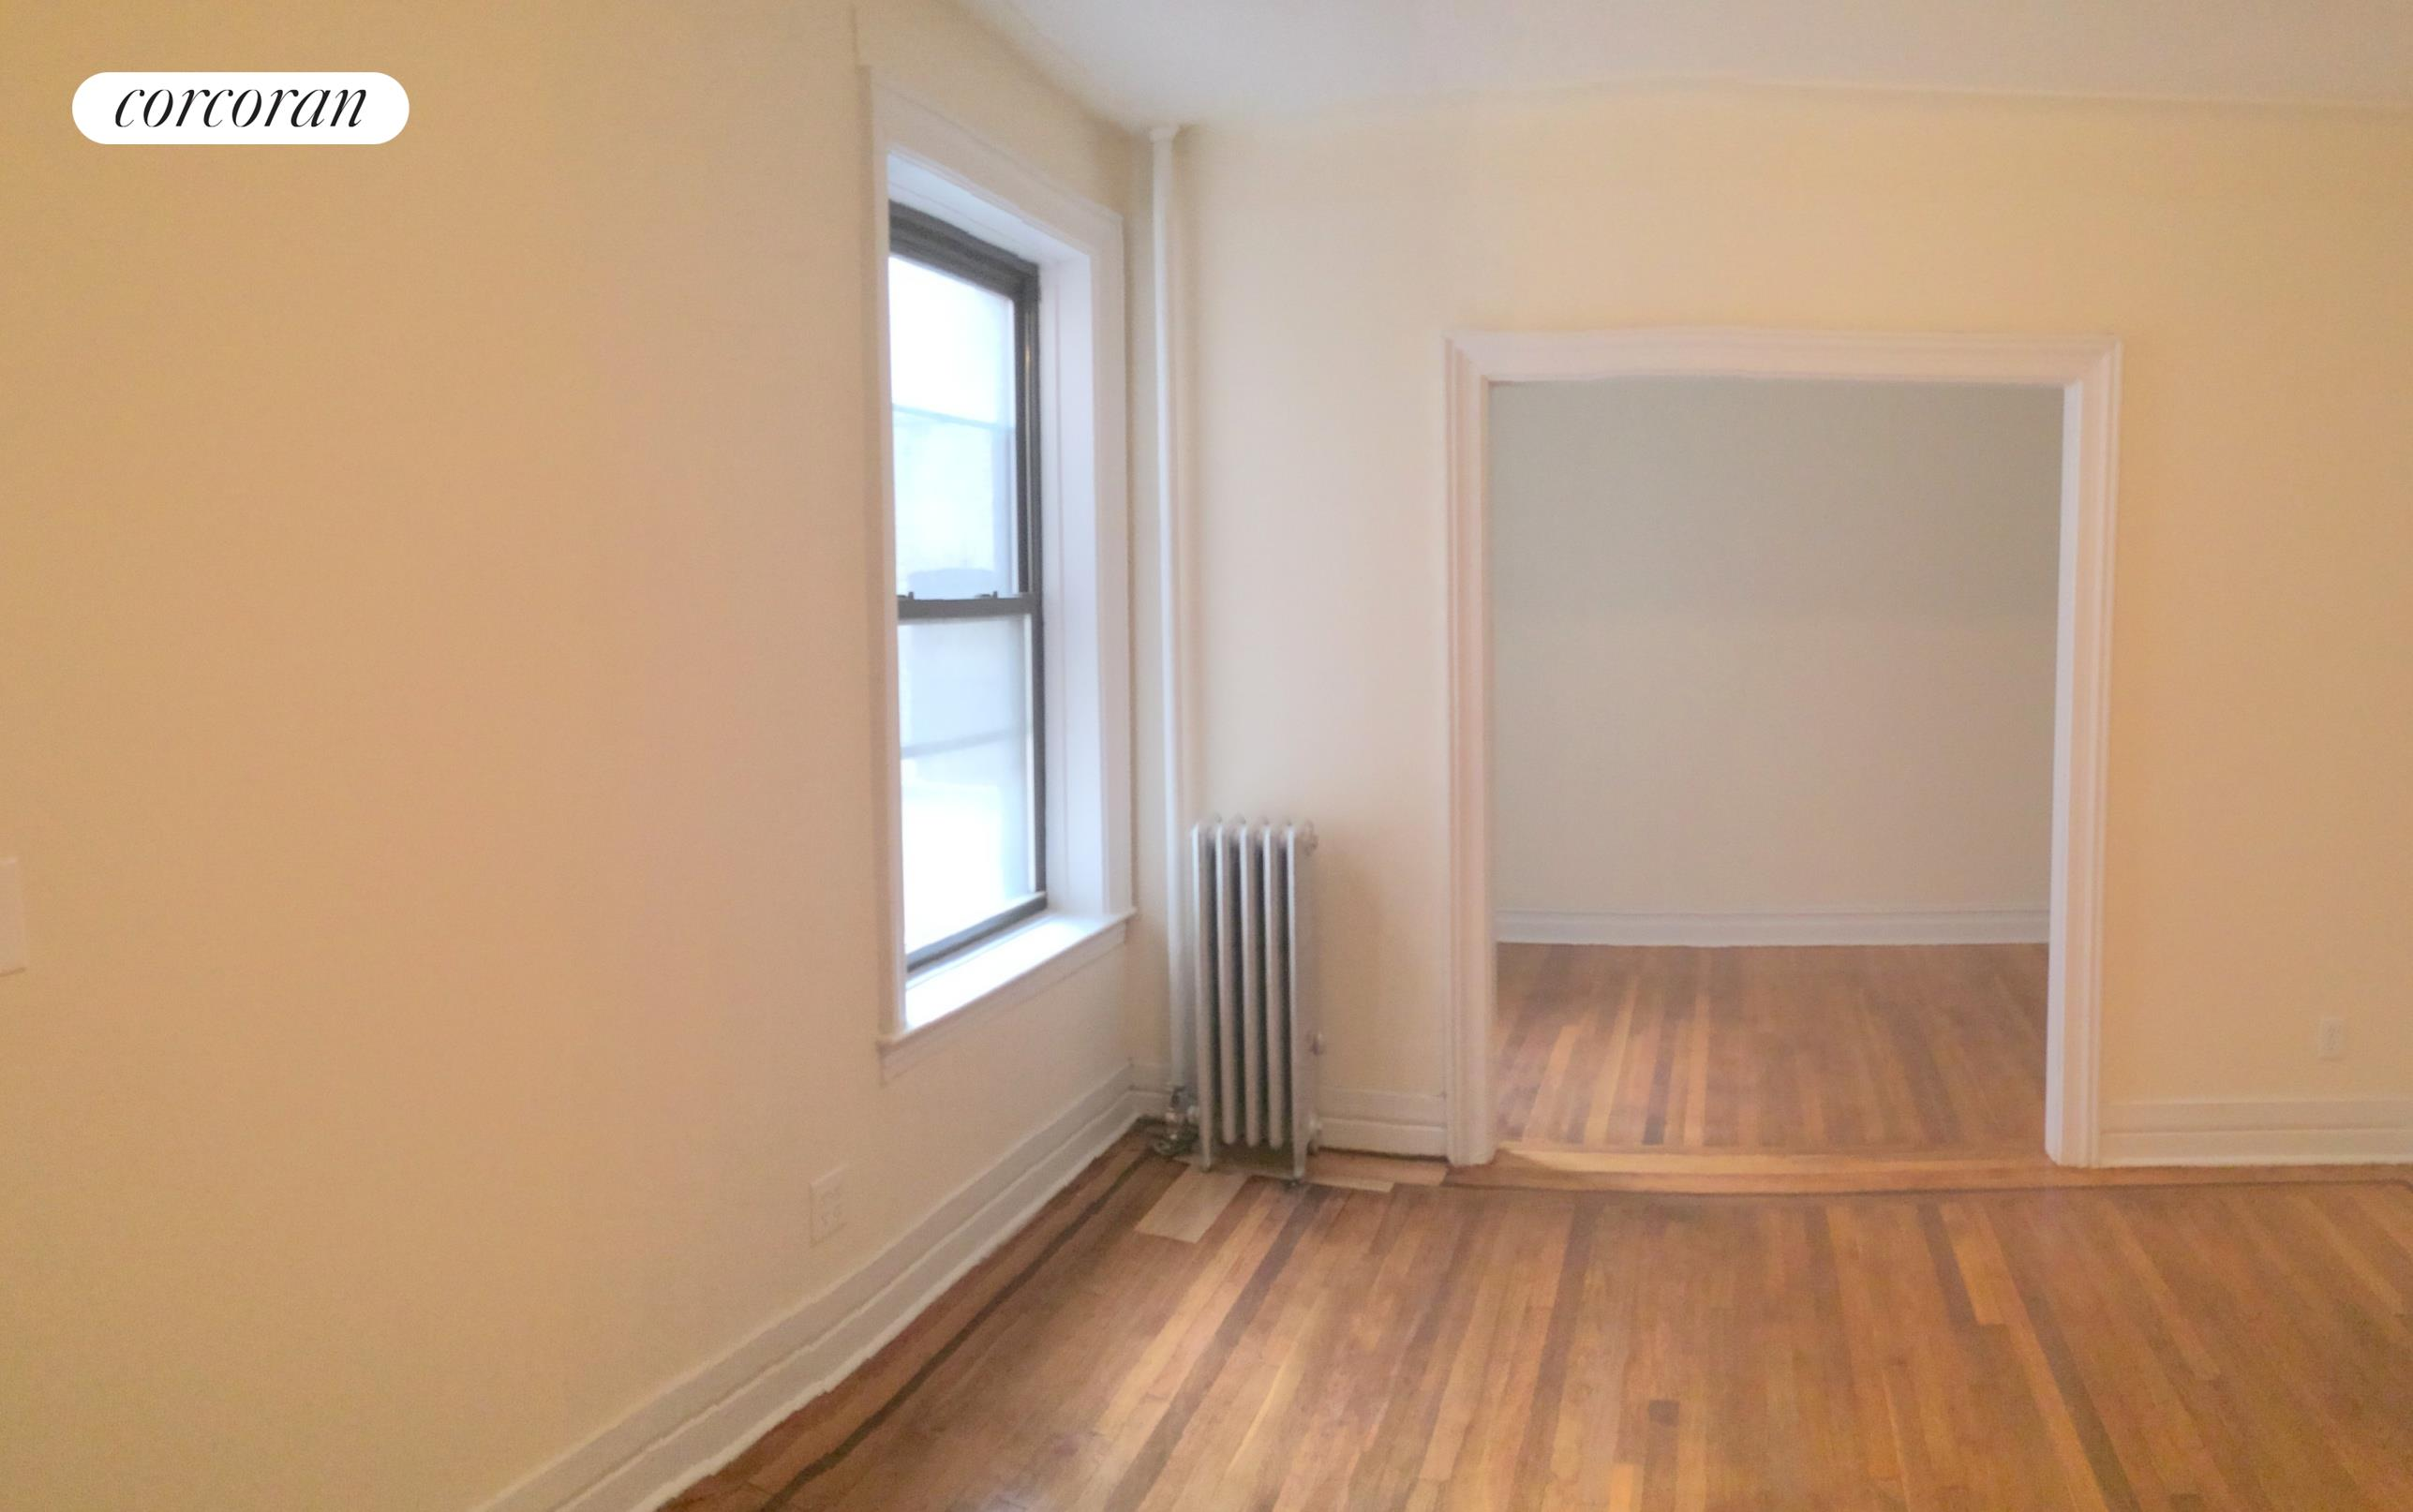 537 Ovington Avenue, Apt. B11, Bay Ridge